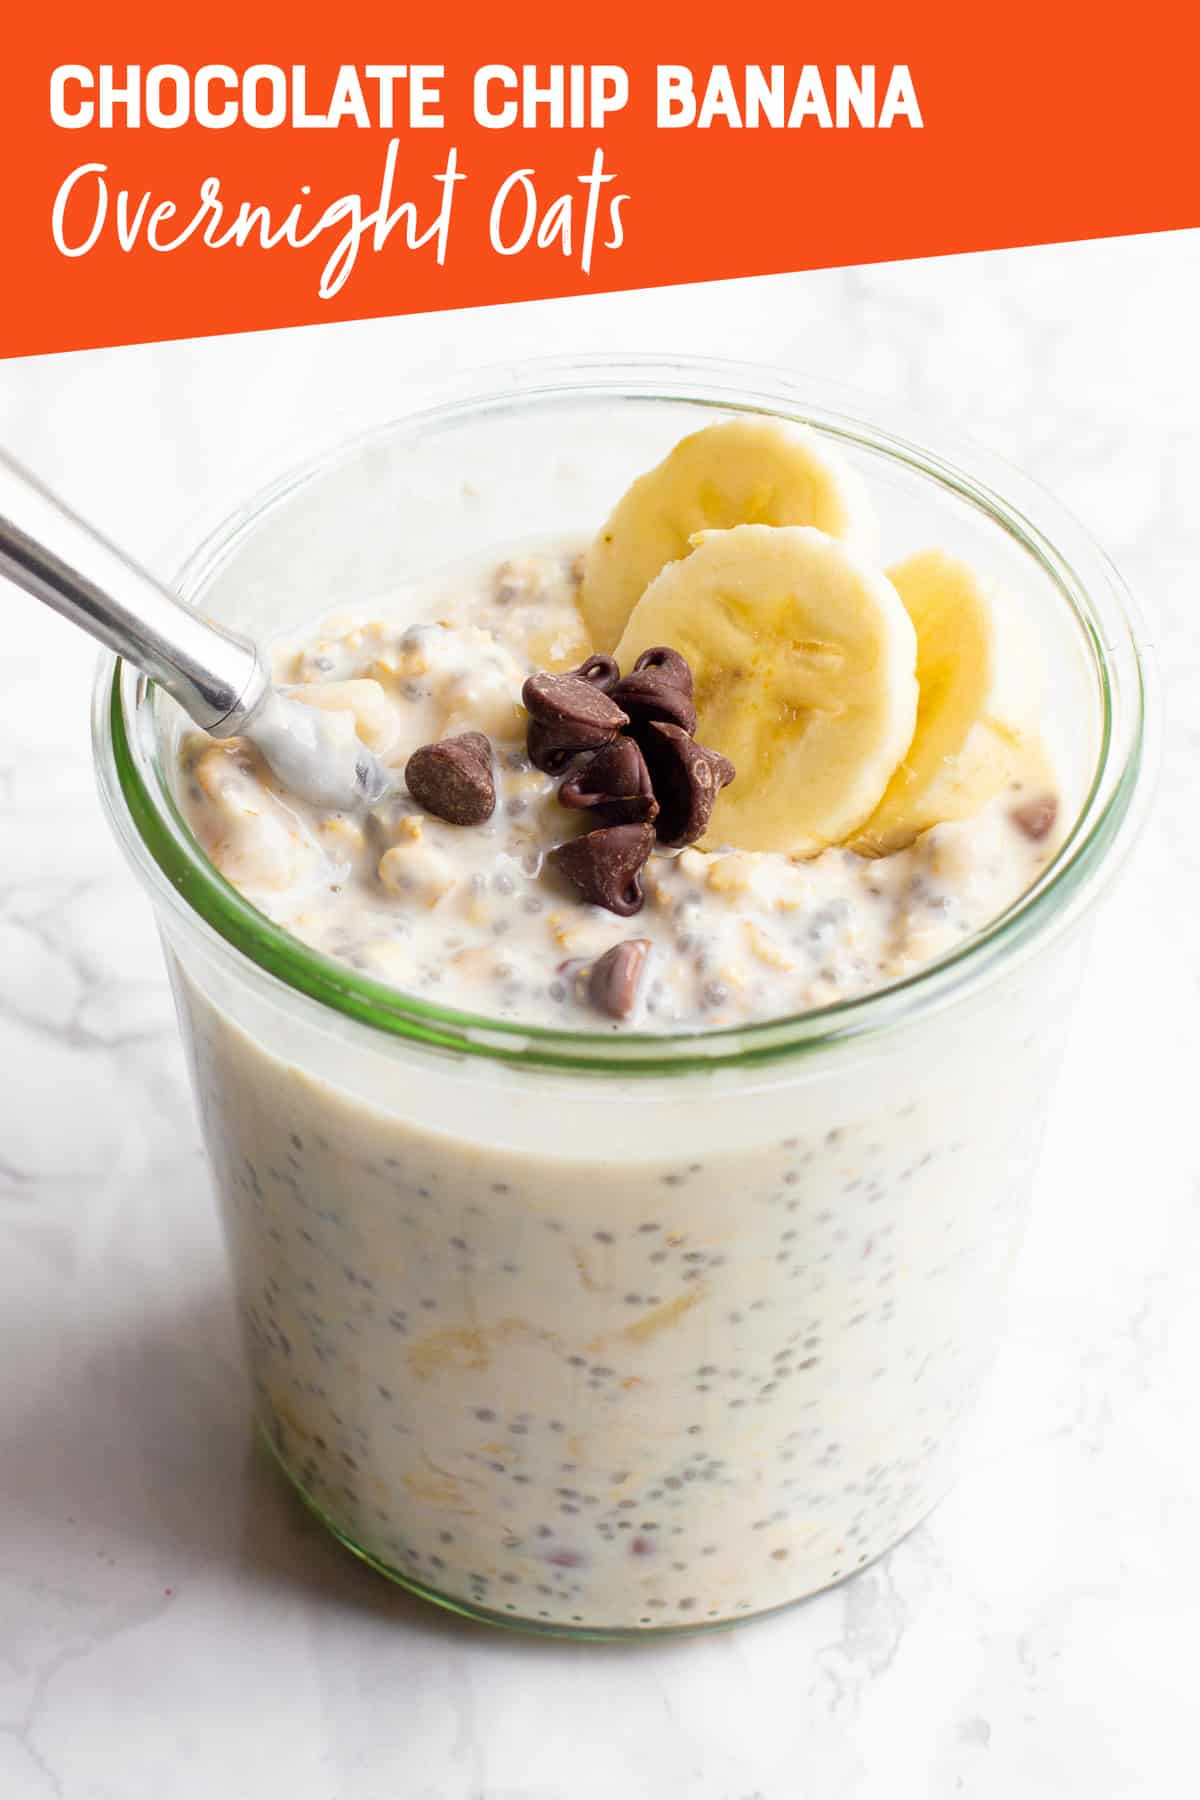 """A clear glass jar filled with Banana Chocolate Chip Overnight Oats, with a spoon sticking out. A text overlay reads """"Chocolate Chip Banana Overnight Oats."""""""